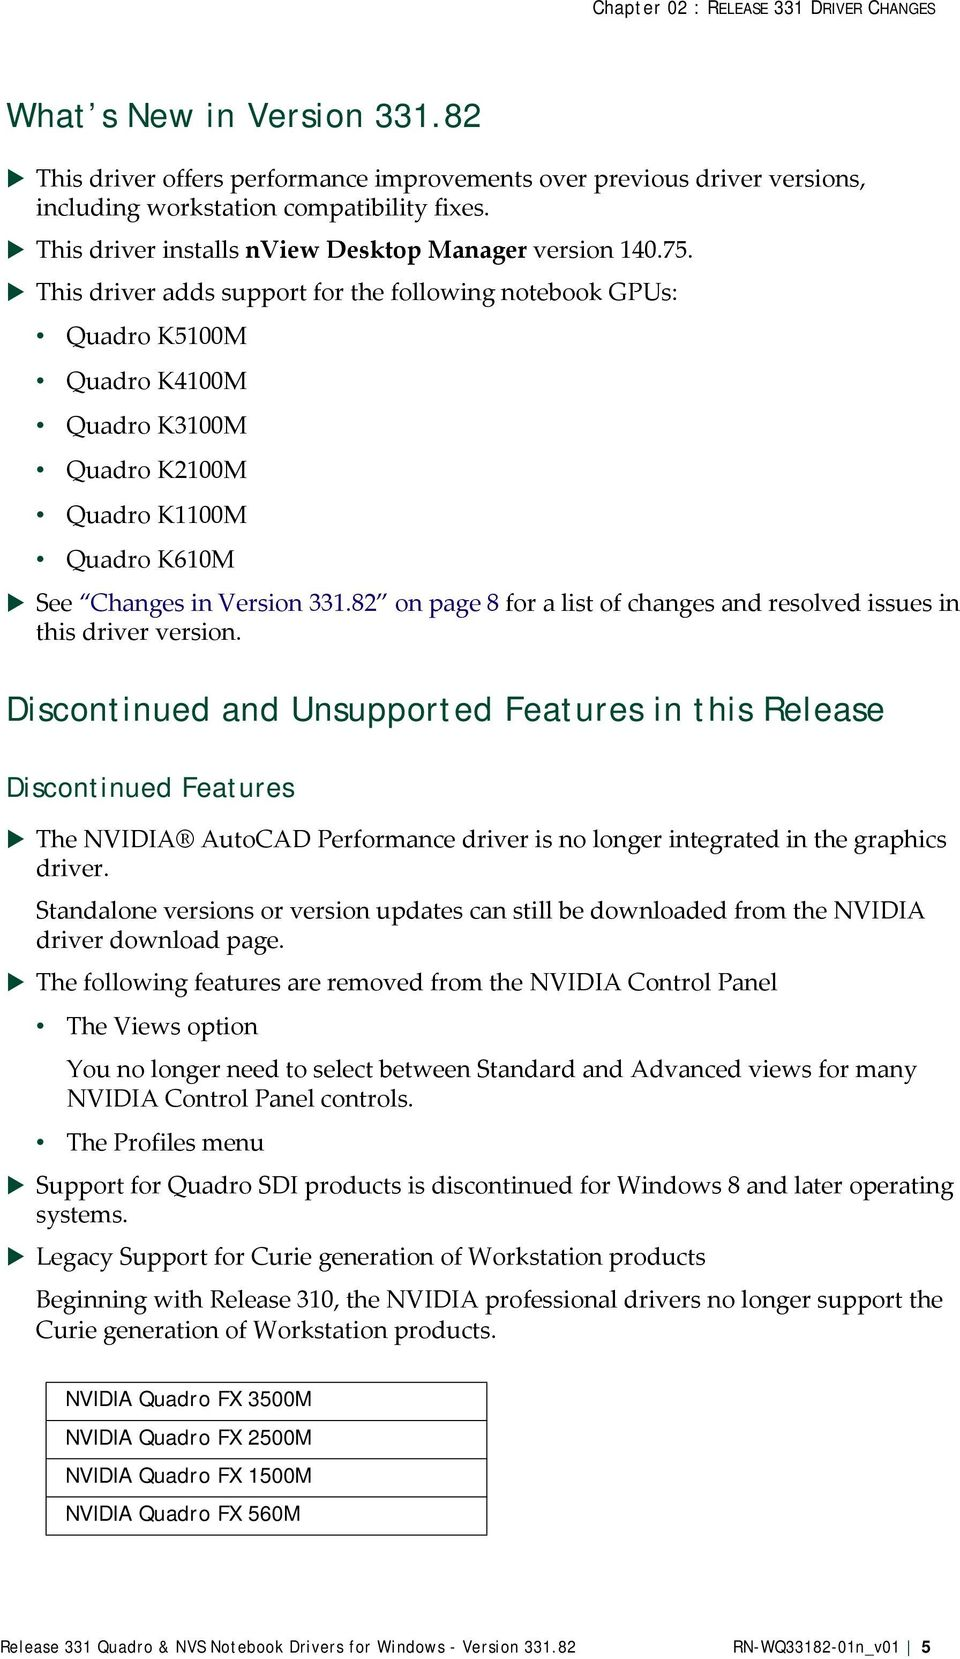 Release 331 Quadro & NVS Notebook Drivers for Windows